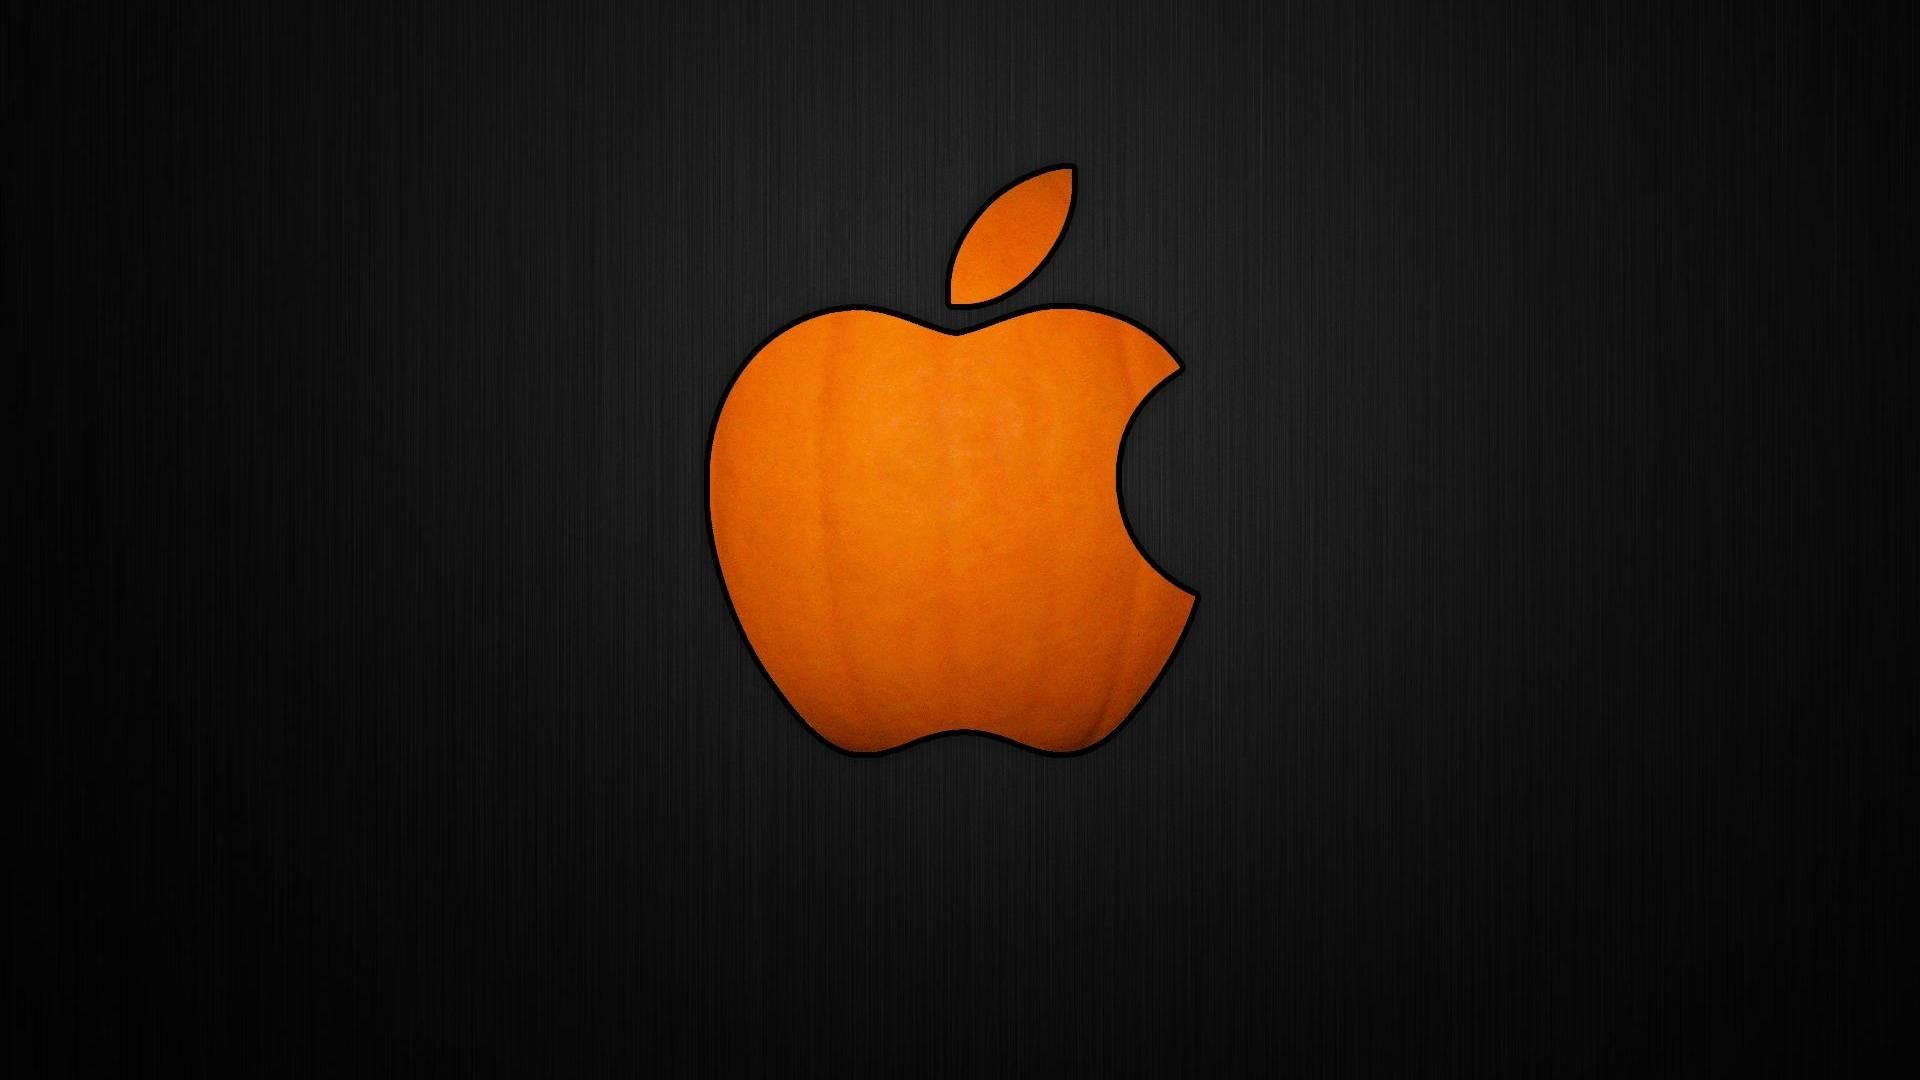 Wallpaper Apple Logo 1920x1080 Oboi Tykvy Hellouin Tykvy